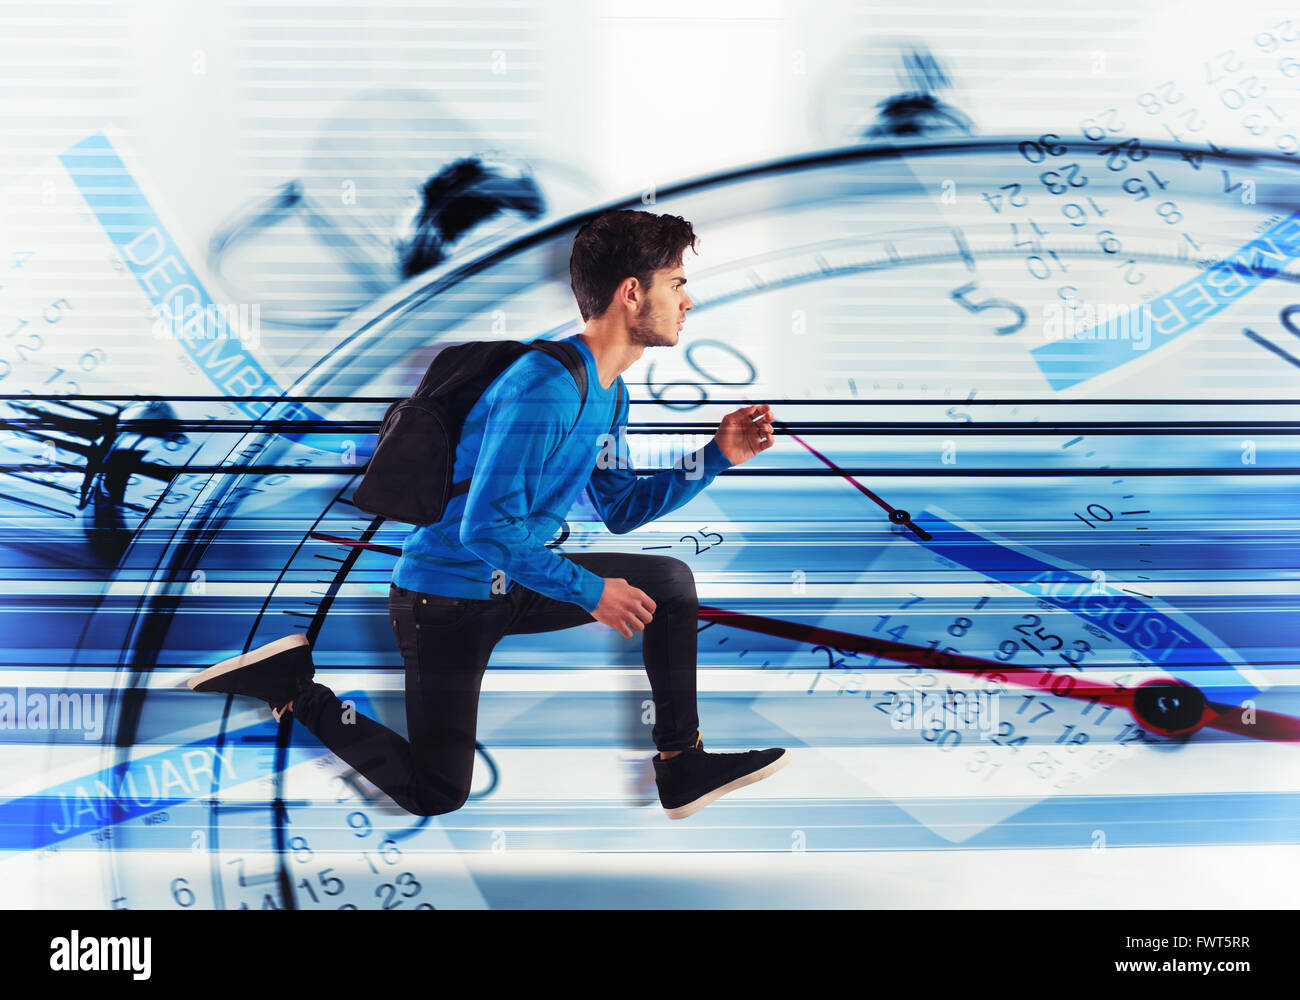 Run for the delay - Stock Image